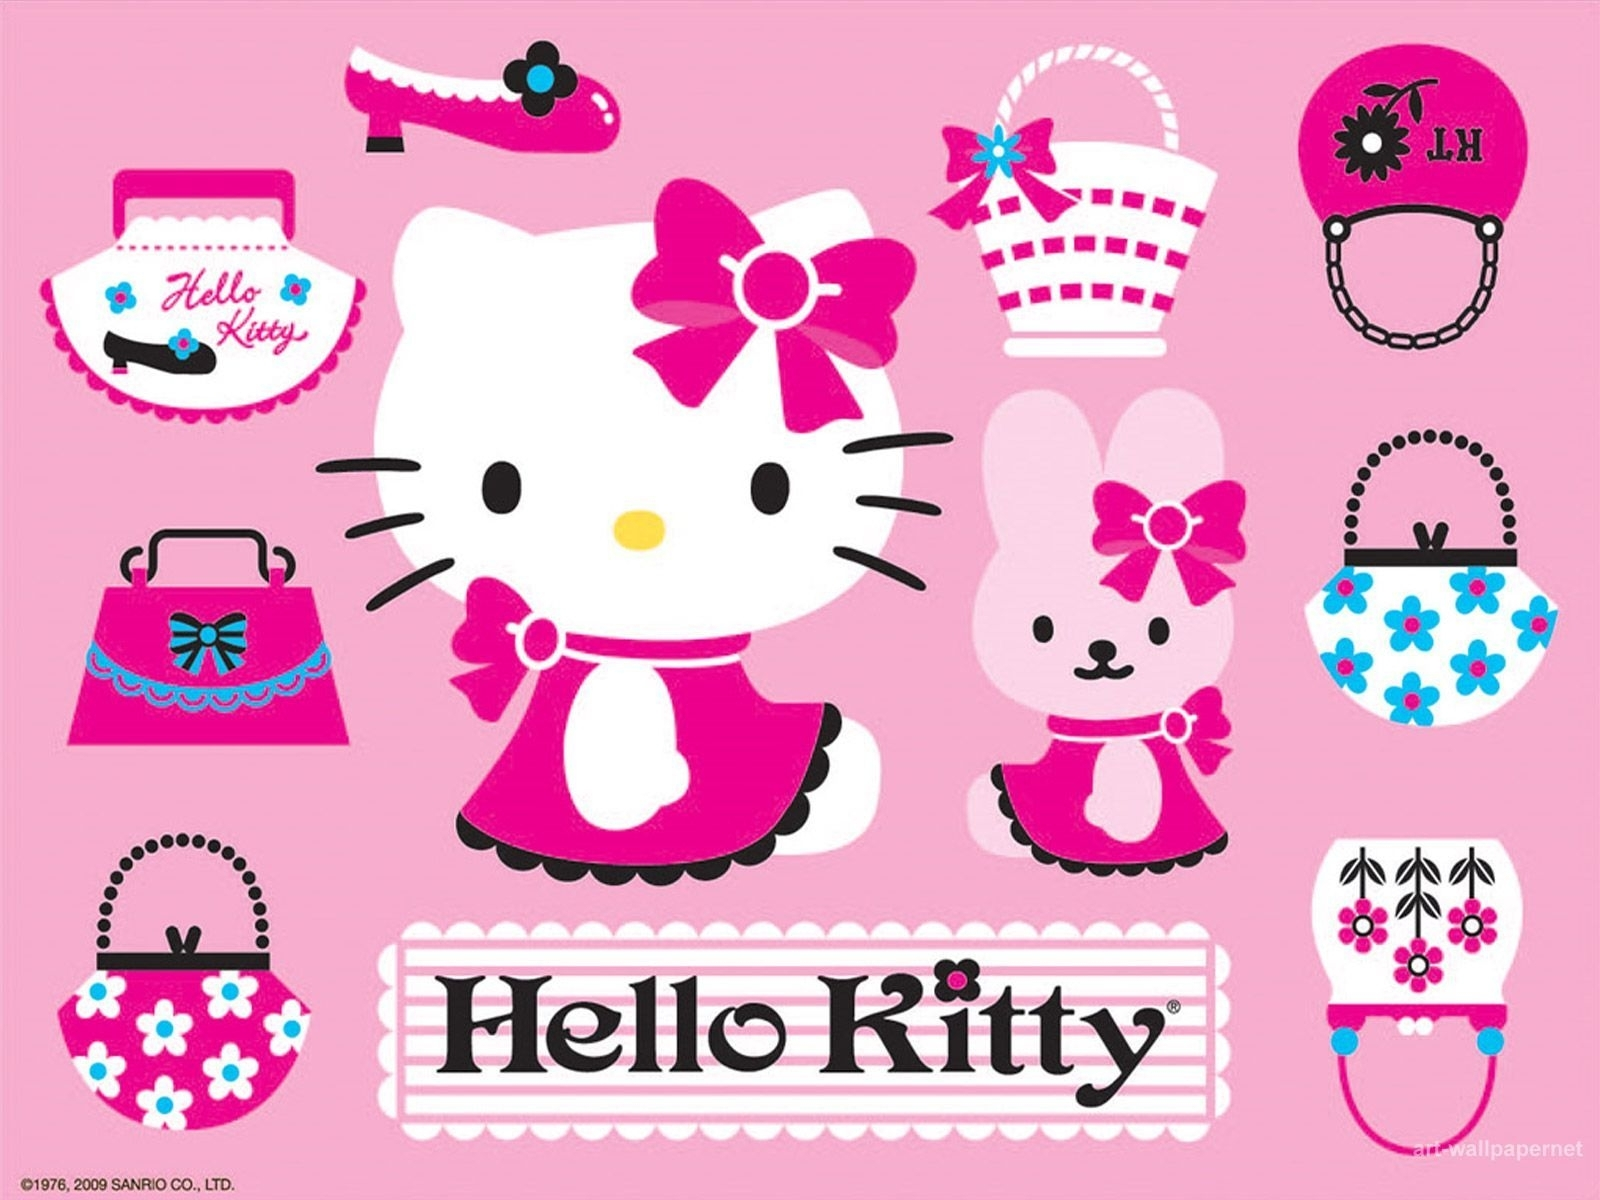 10 Most Popular Hello Kitty Wallpaper For Free Full Hd 1080p For Pc